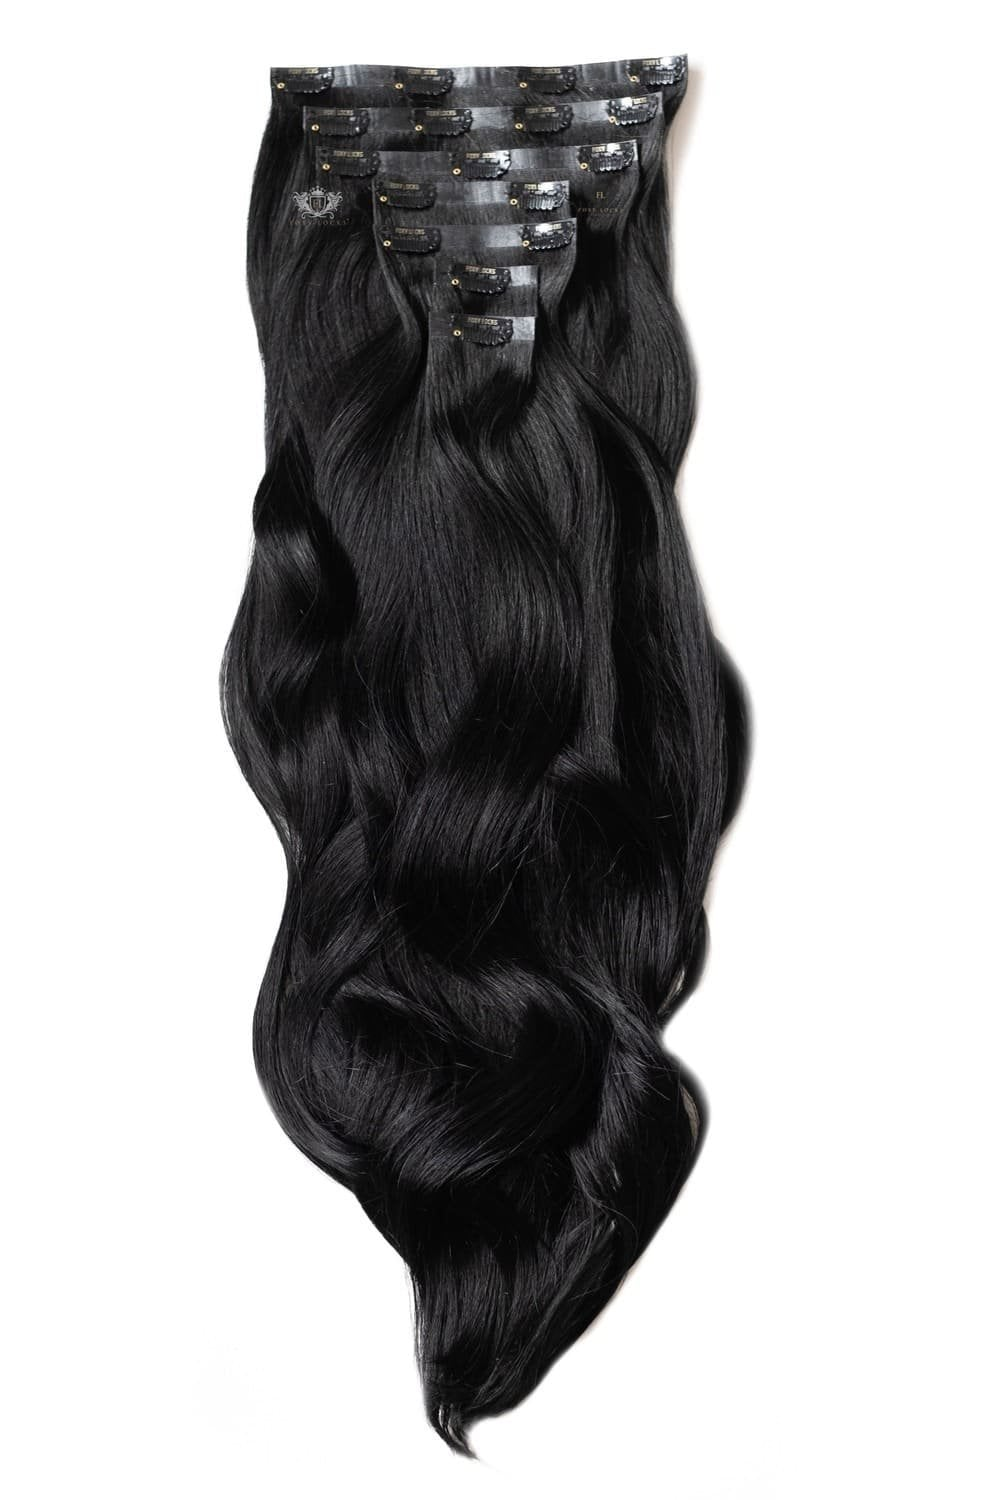 Jet Black Luxurious Seamless 24 Clip In Human Hair Extensions 280g